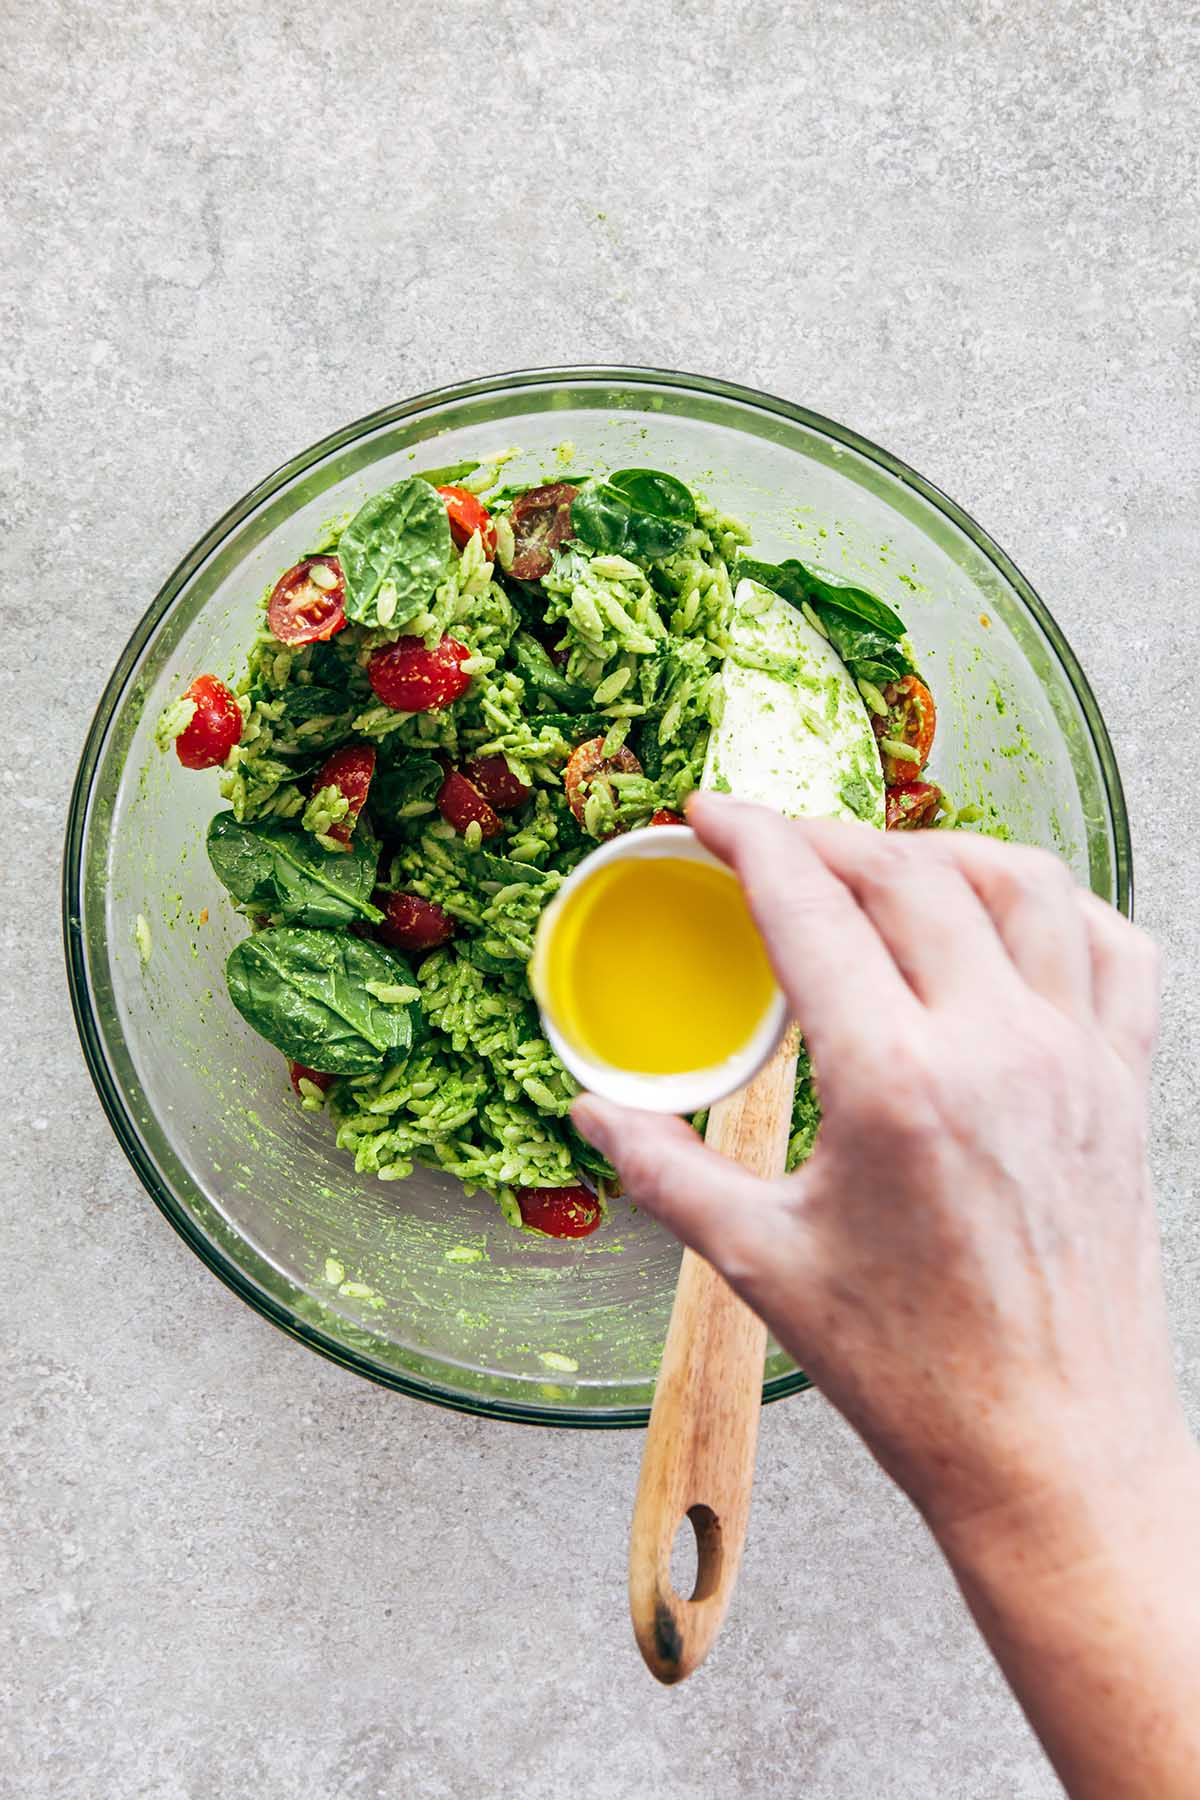 A hand drizzling olive oil from a small white bowl into a bowl of pesto orzo salad.